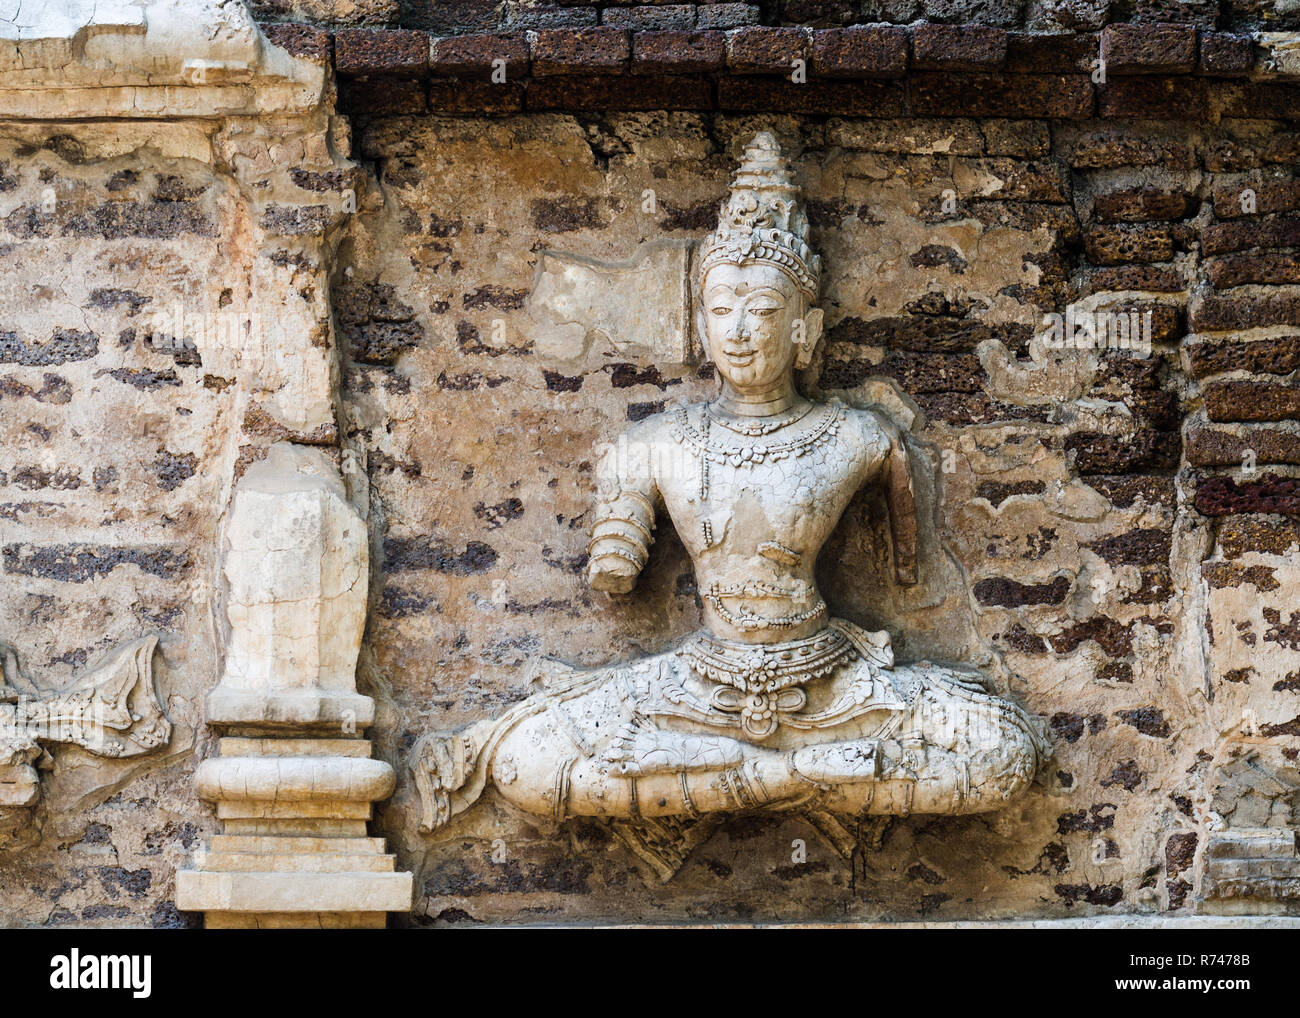 Stucco reliefs on the facade of Maha chedi, Wat Chet Yot, Chiang Mai, Thailand - Stock Image